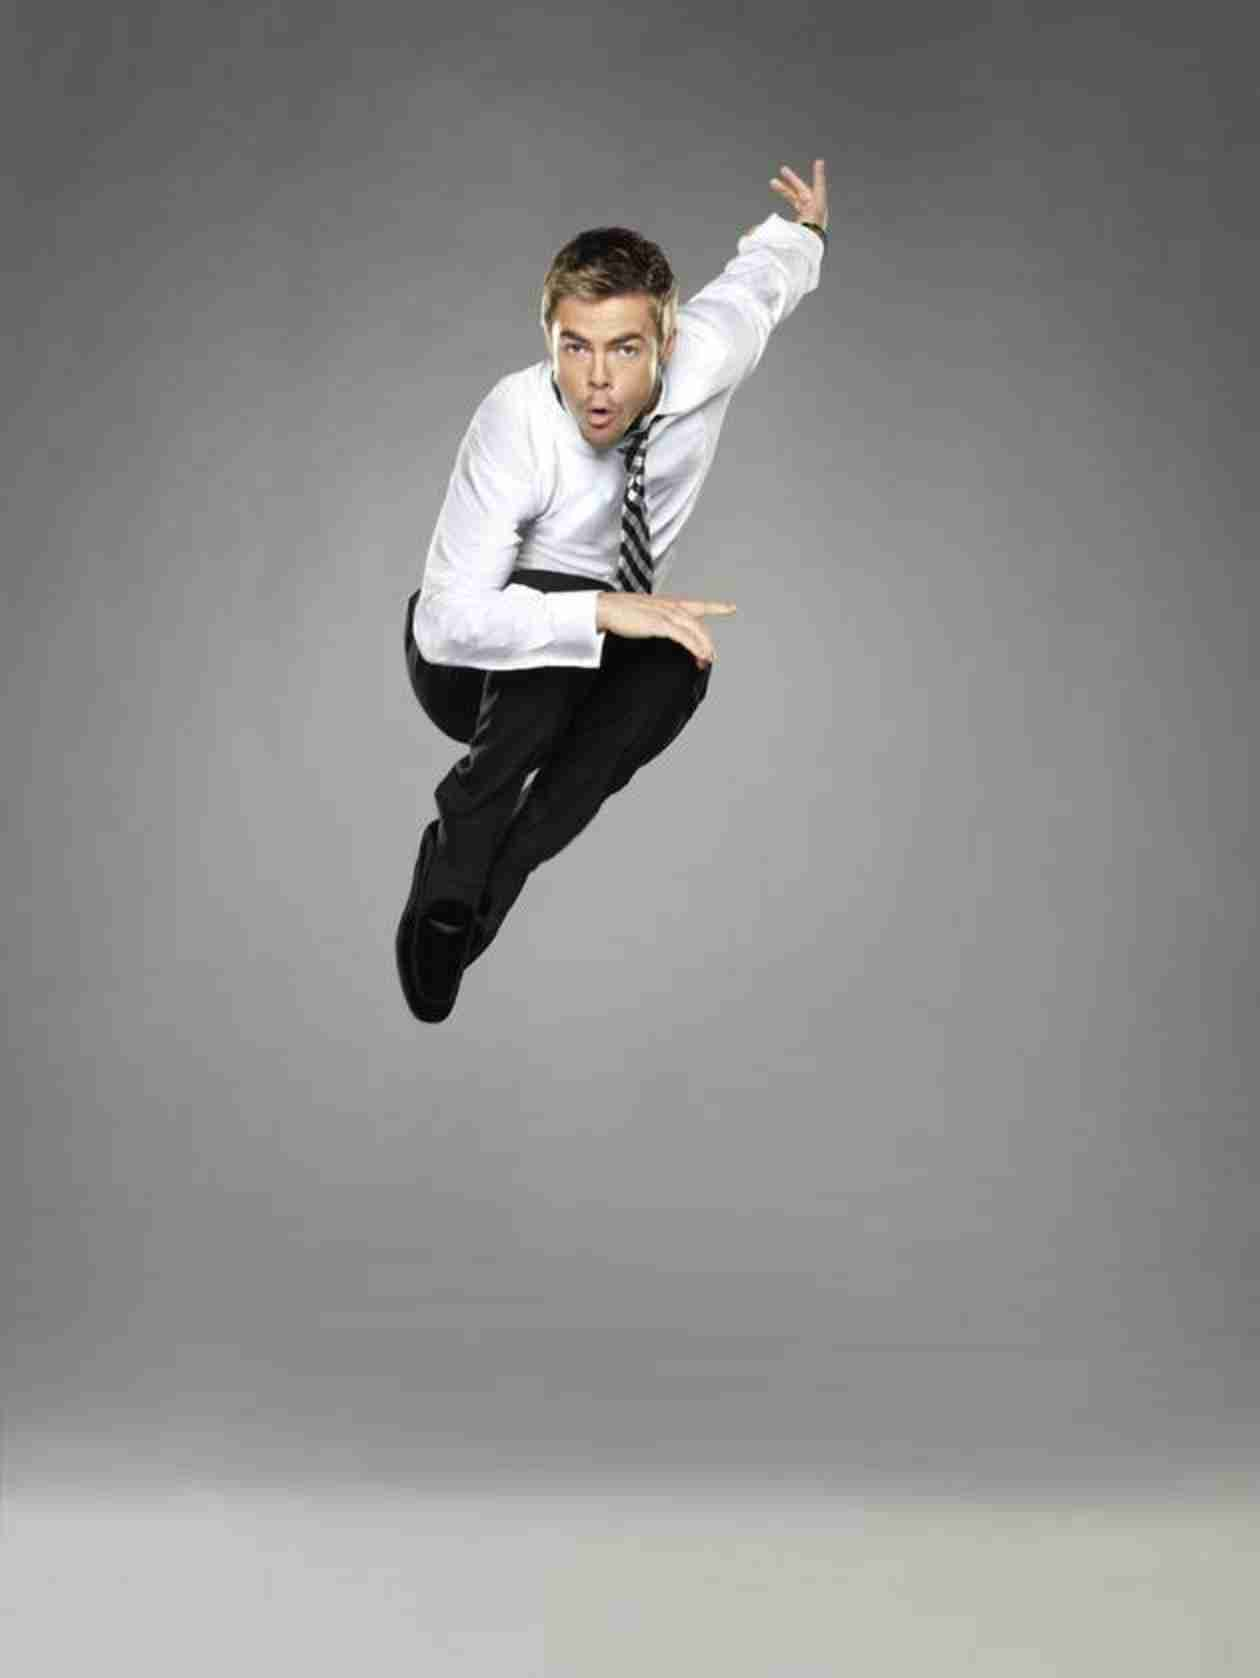 Derek Hough Is Back, Dancing With Double-Amputee Amy Purdy — Are You Excited?